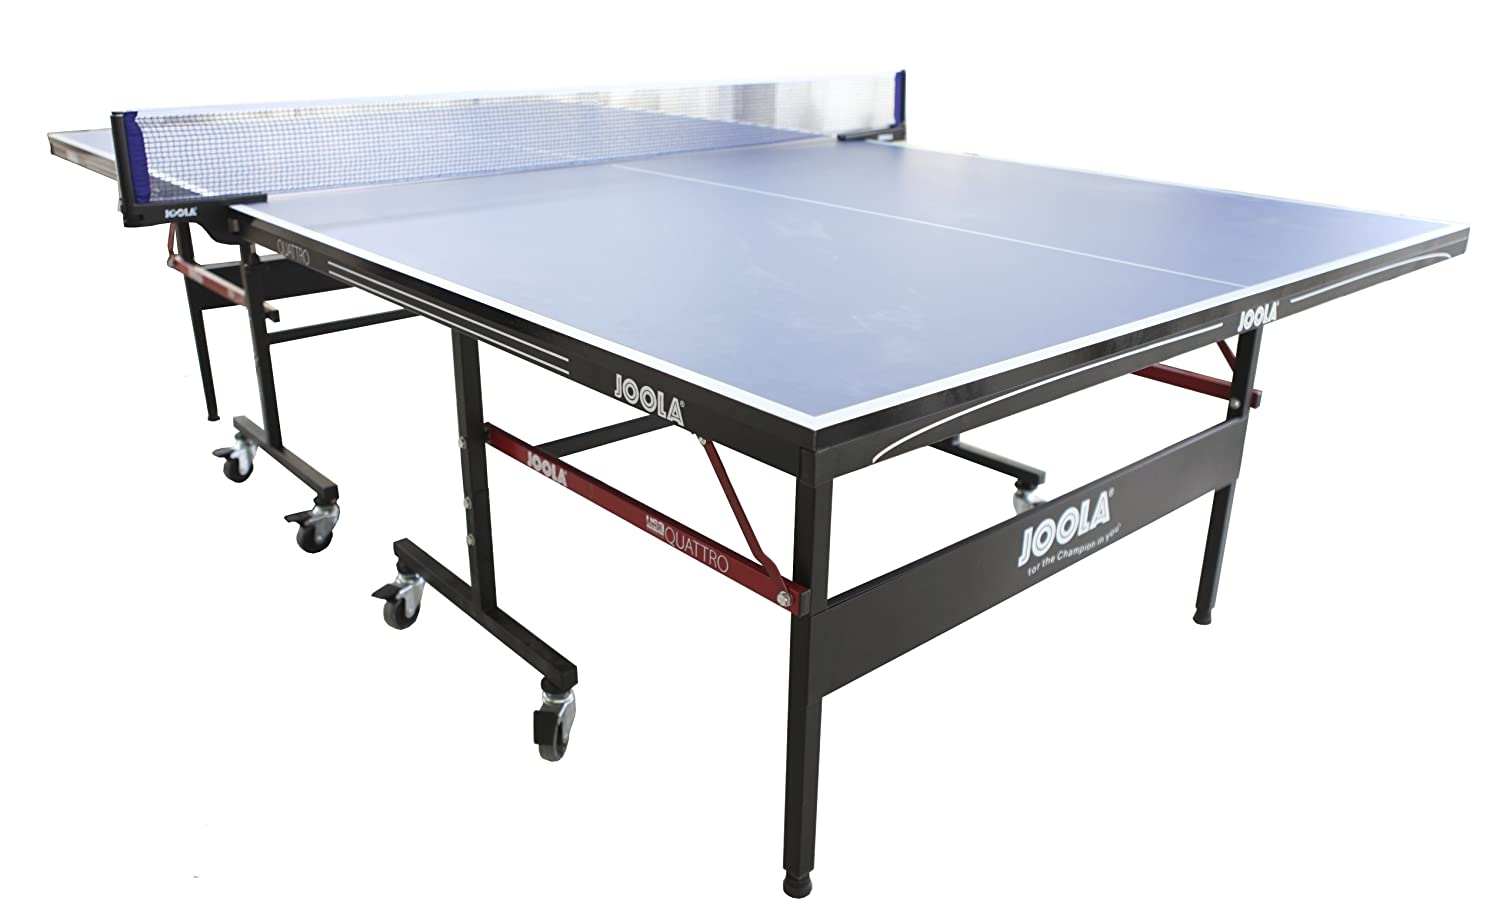 Joola Quattro Table Tennis Table with Compact Net Set $549.98